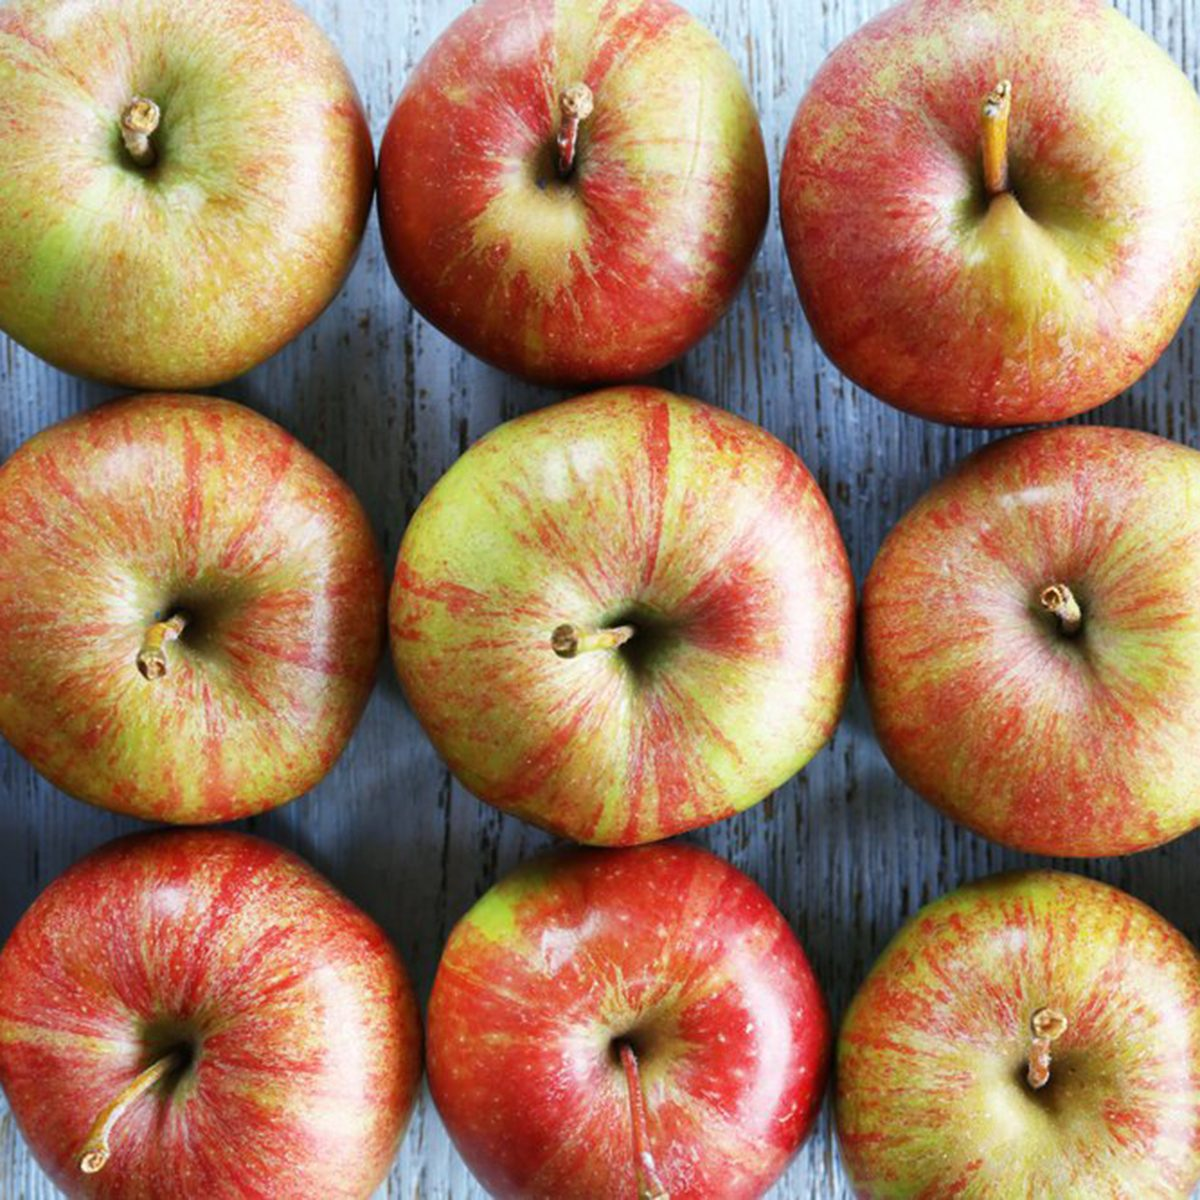 Apples lined up